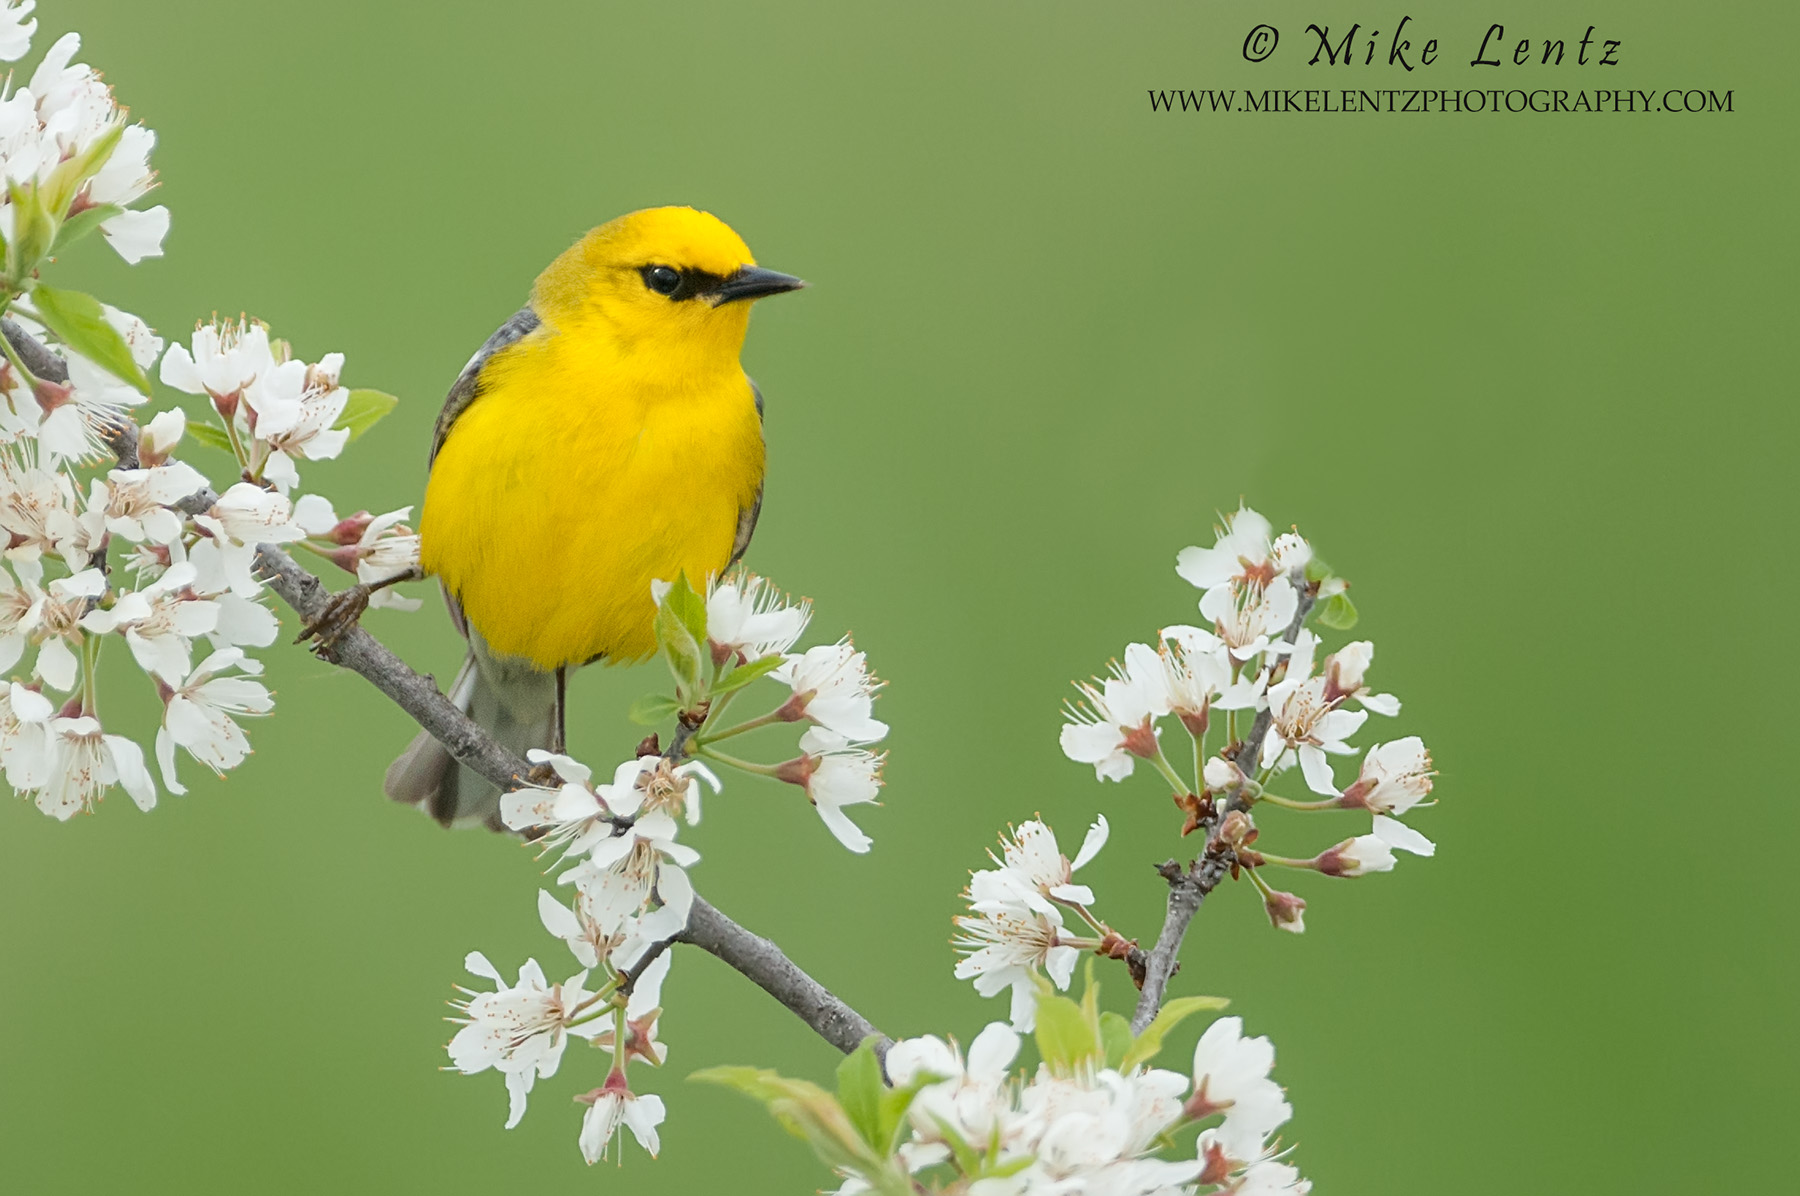 Blue winged warbler on flower buds